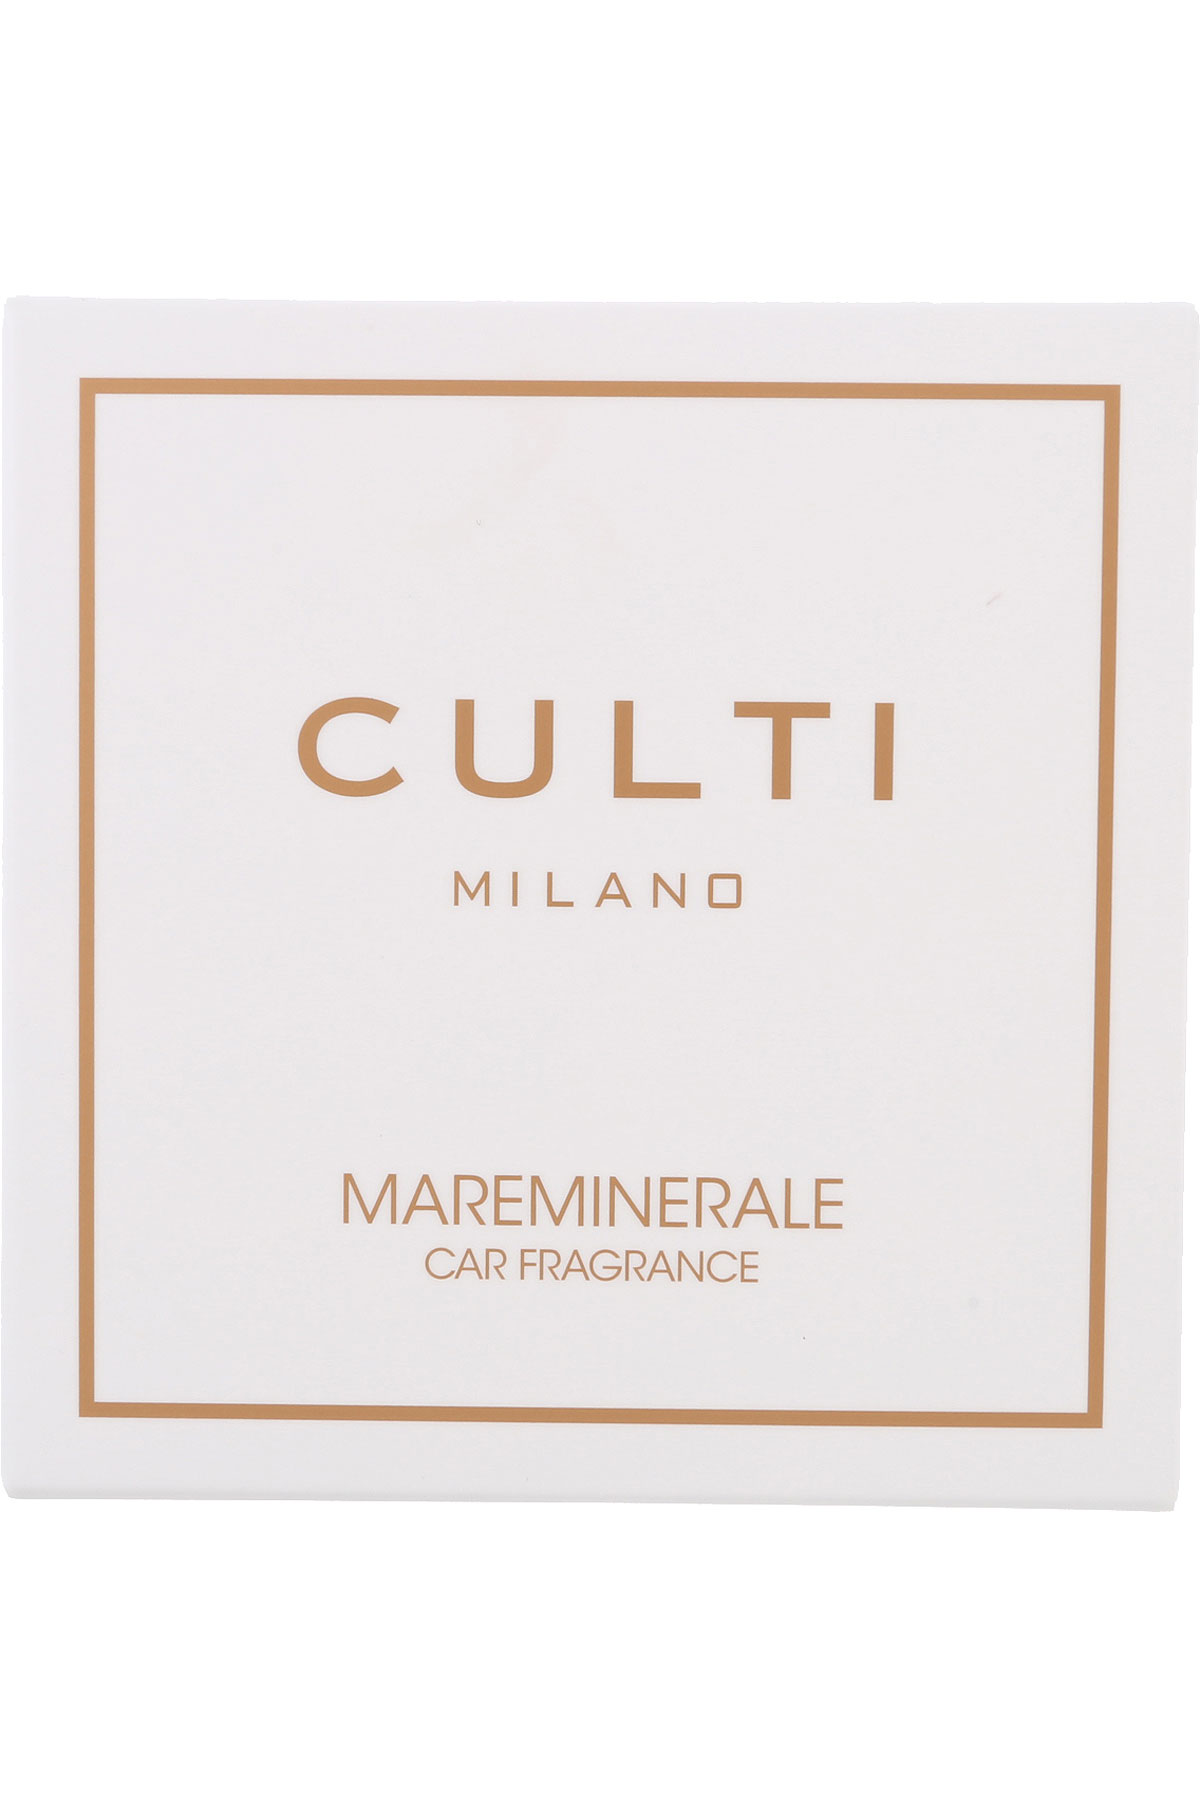 Culti Milano Home Scents for Men On Sale, Mareminerale - Car Fragrance, 2019